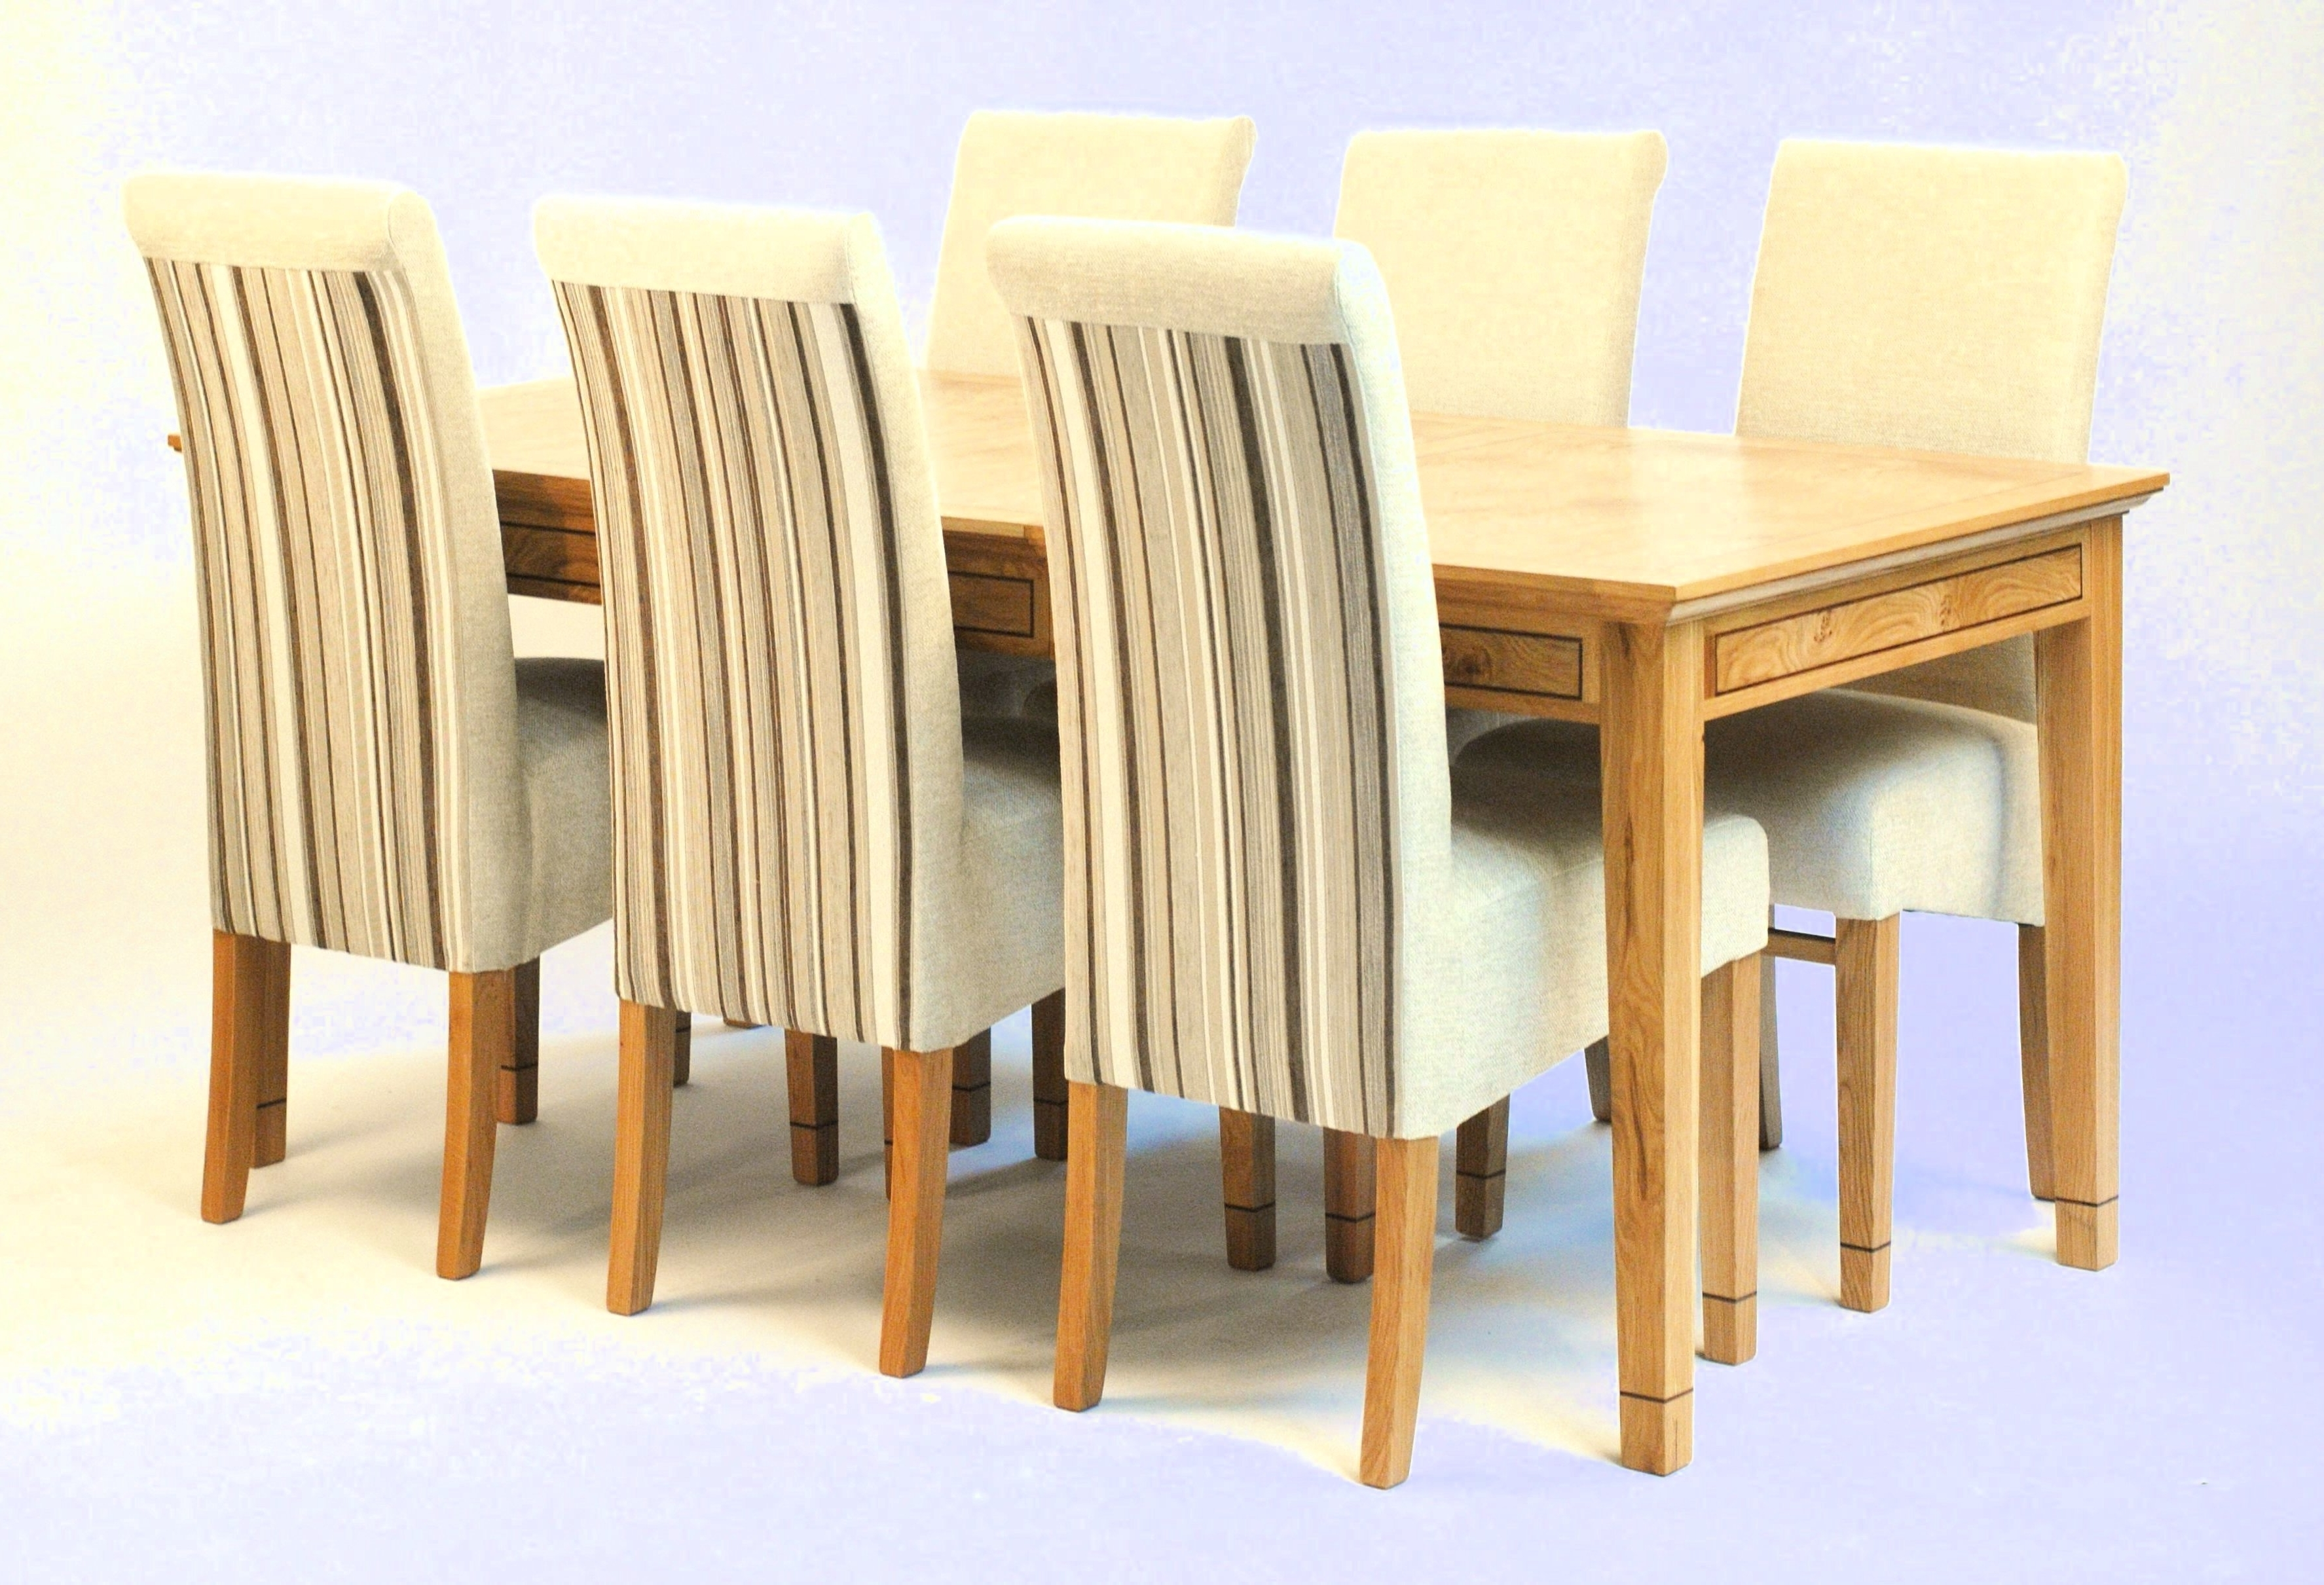 2018 Extending Dining Tables With 6 Chairs With Regard To Oak Extending Dining Table & 6 Chairs (Gallery 14 of 25)